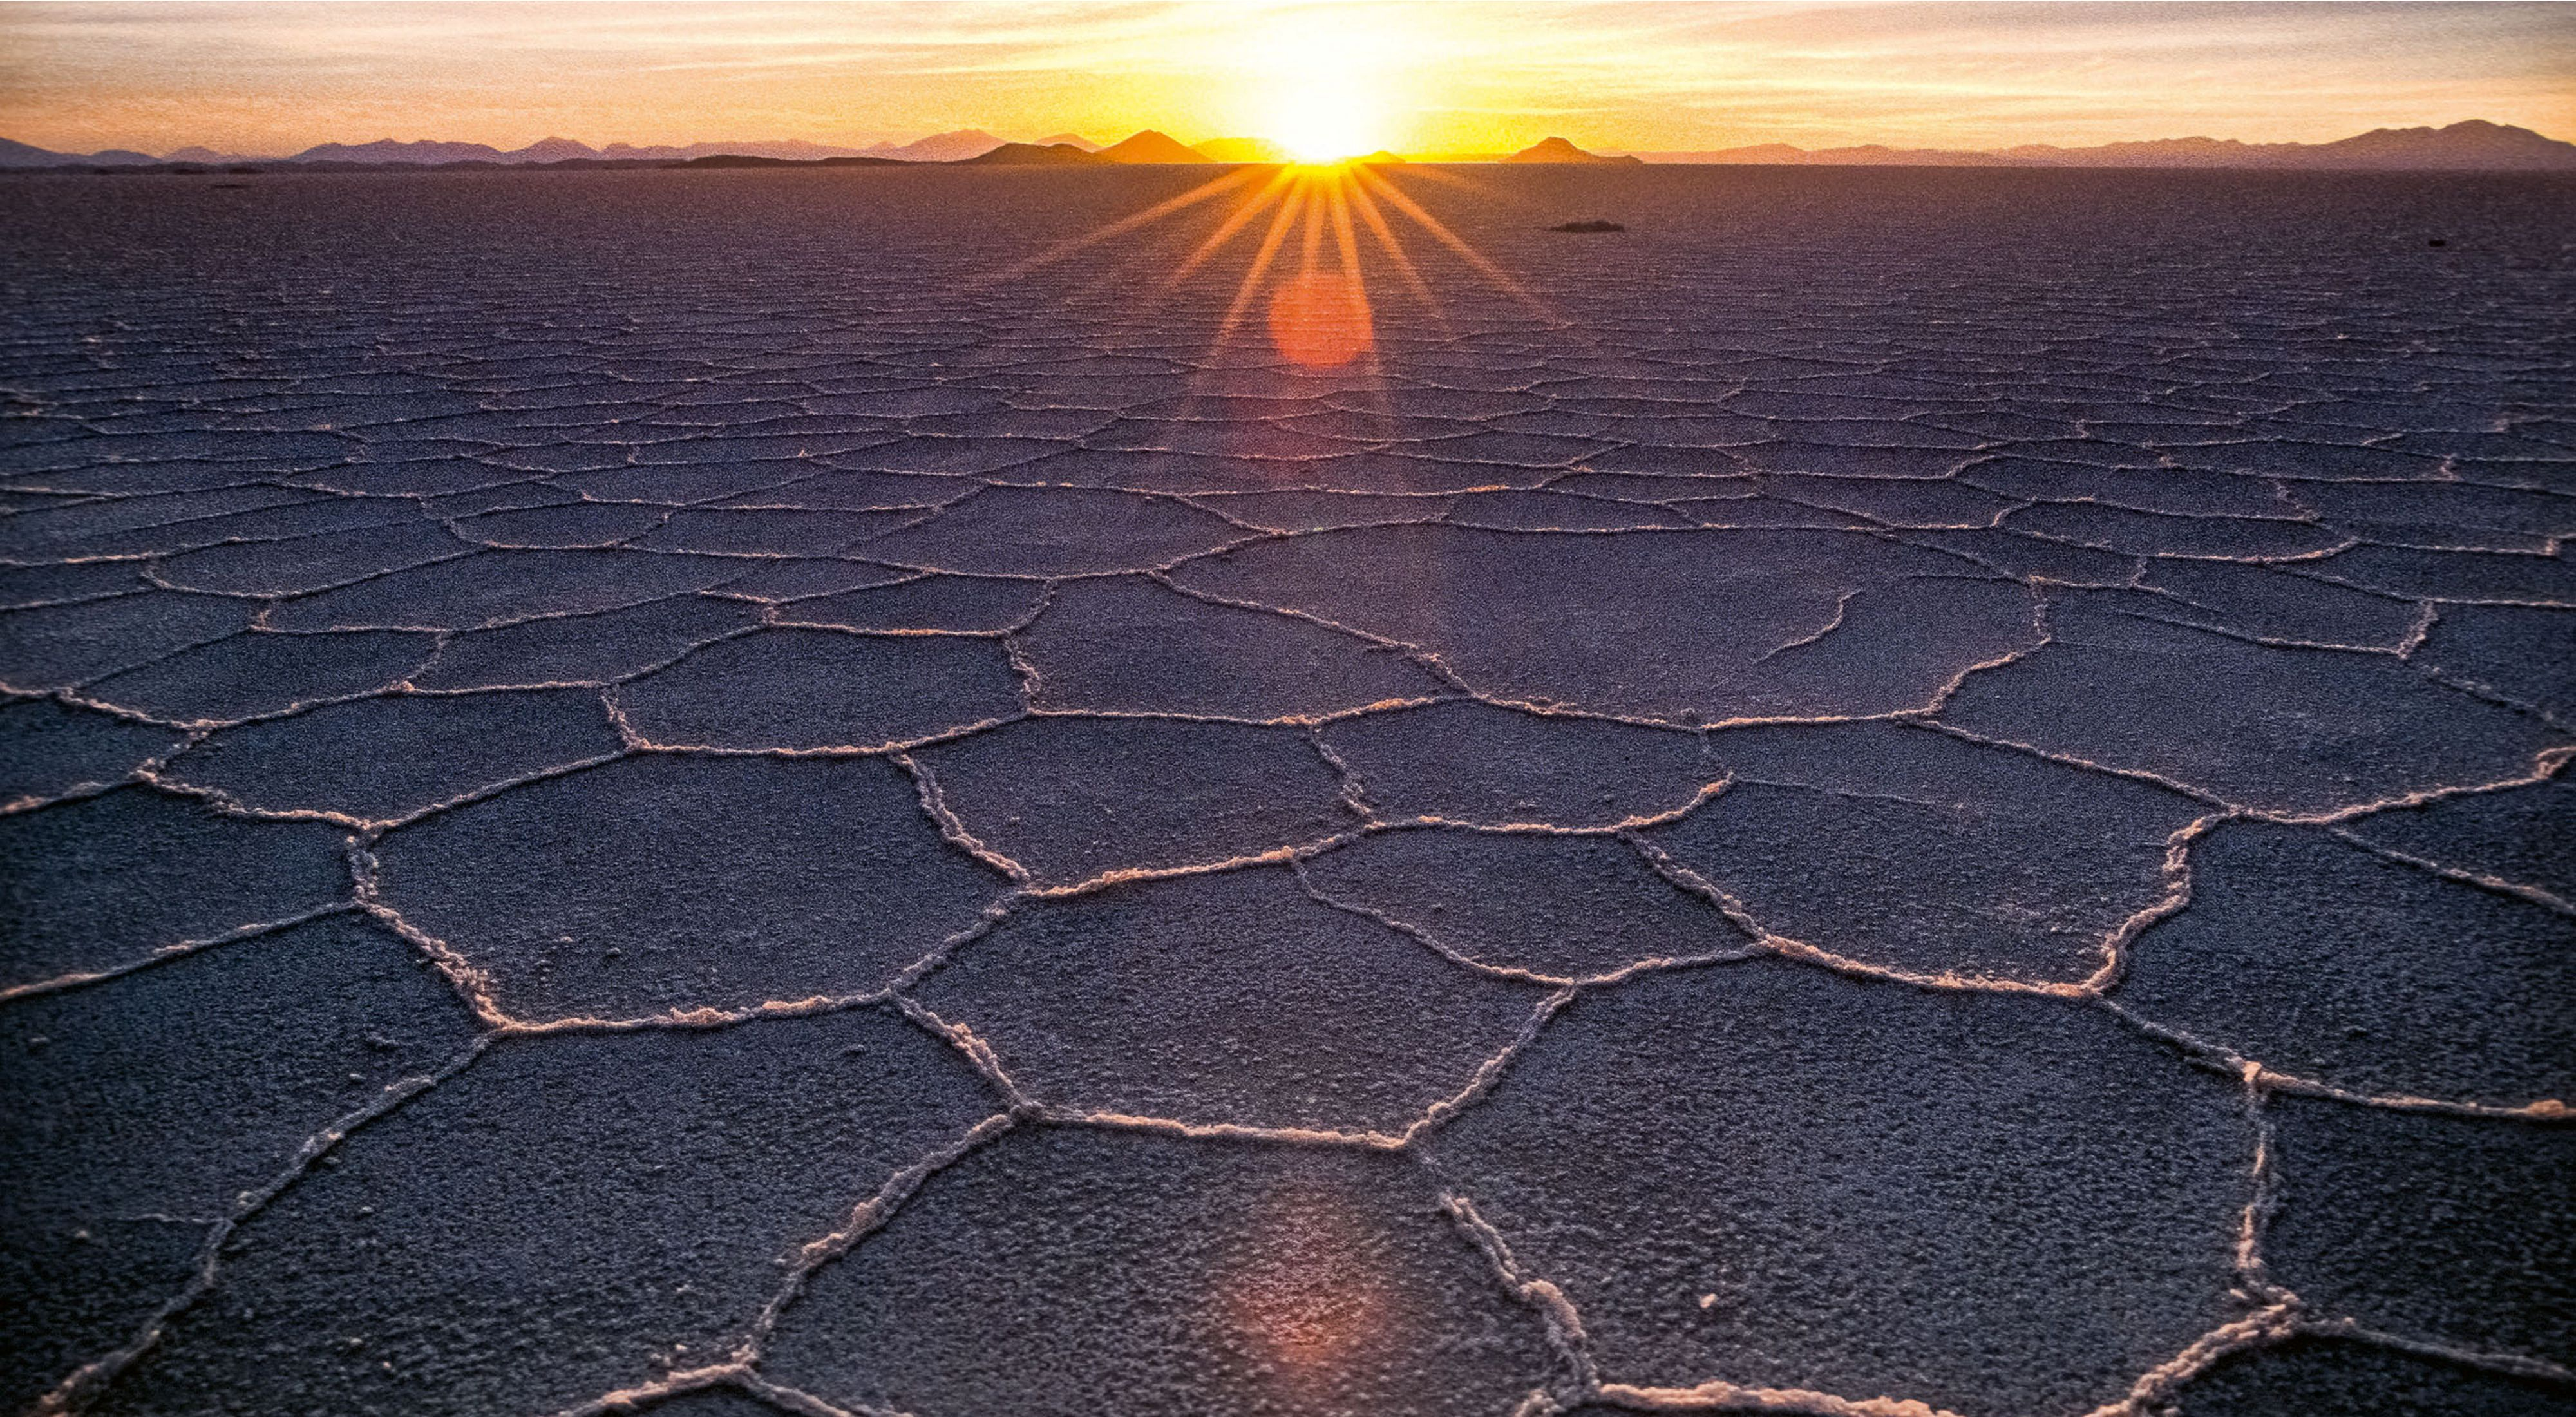 An orange sun sets over a wide plain of cracked earth.